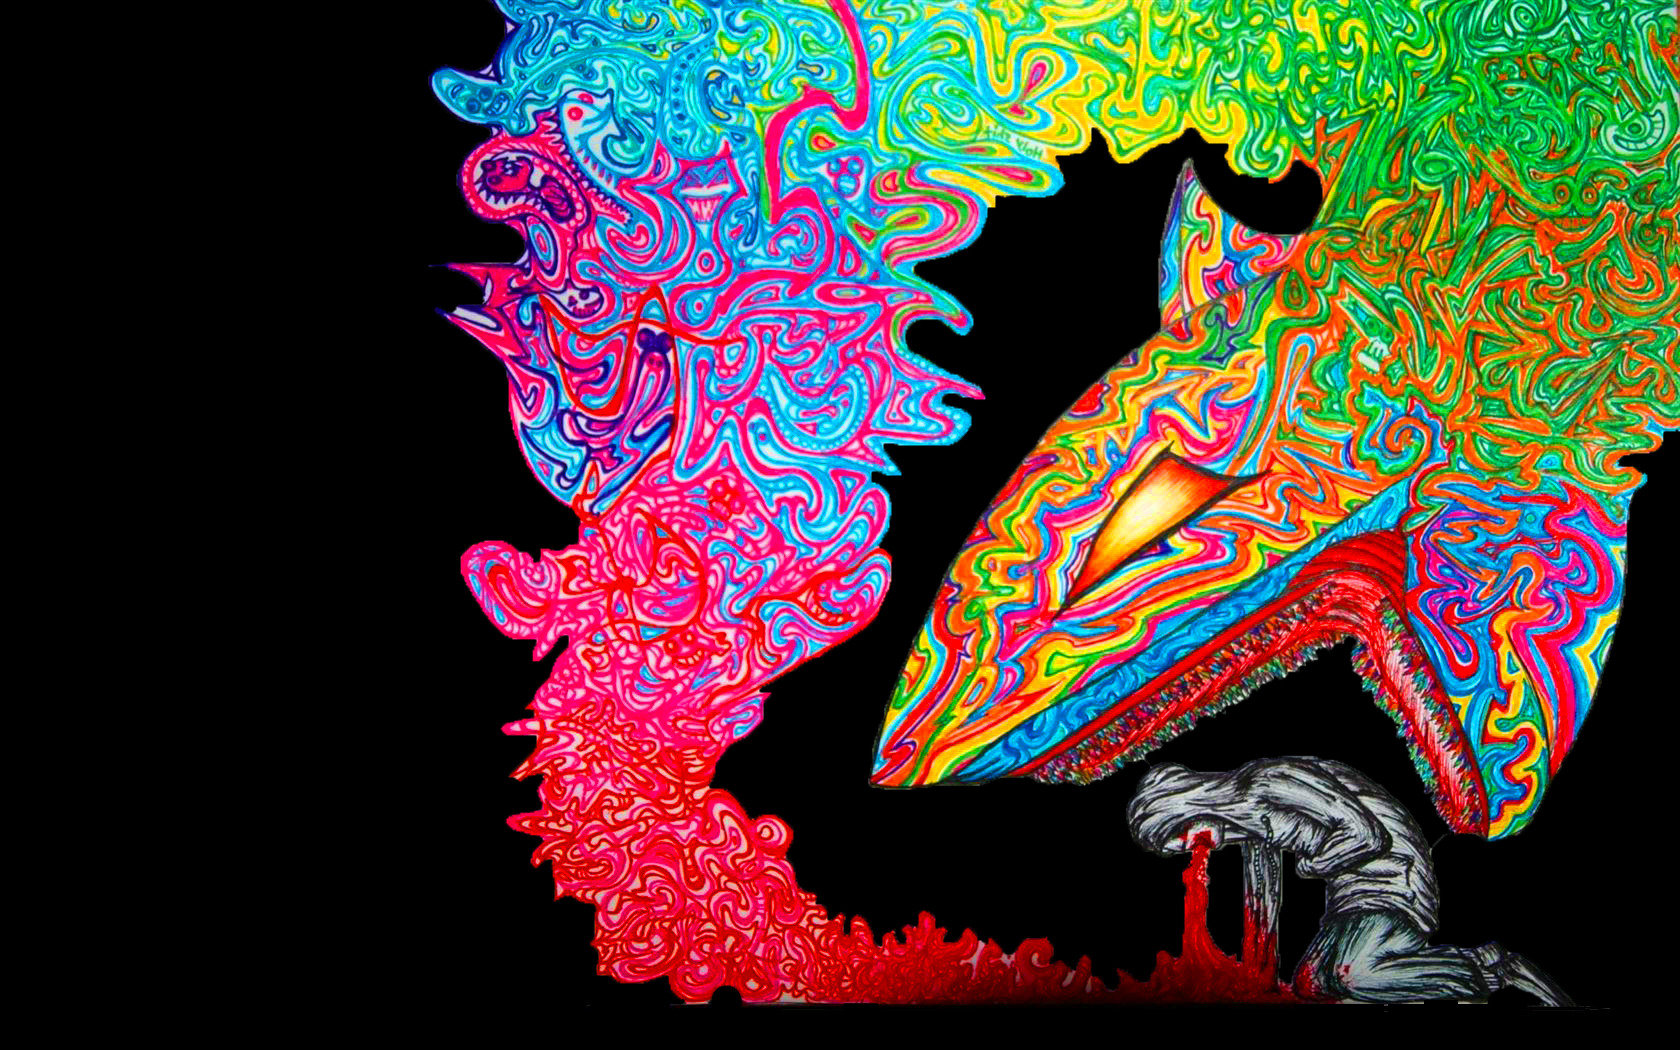 drawings kneeling Sharks psychedelic HD Wallpaper